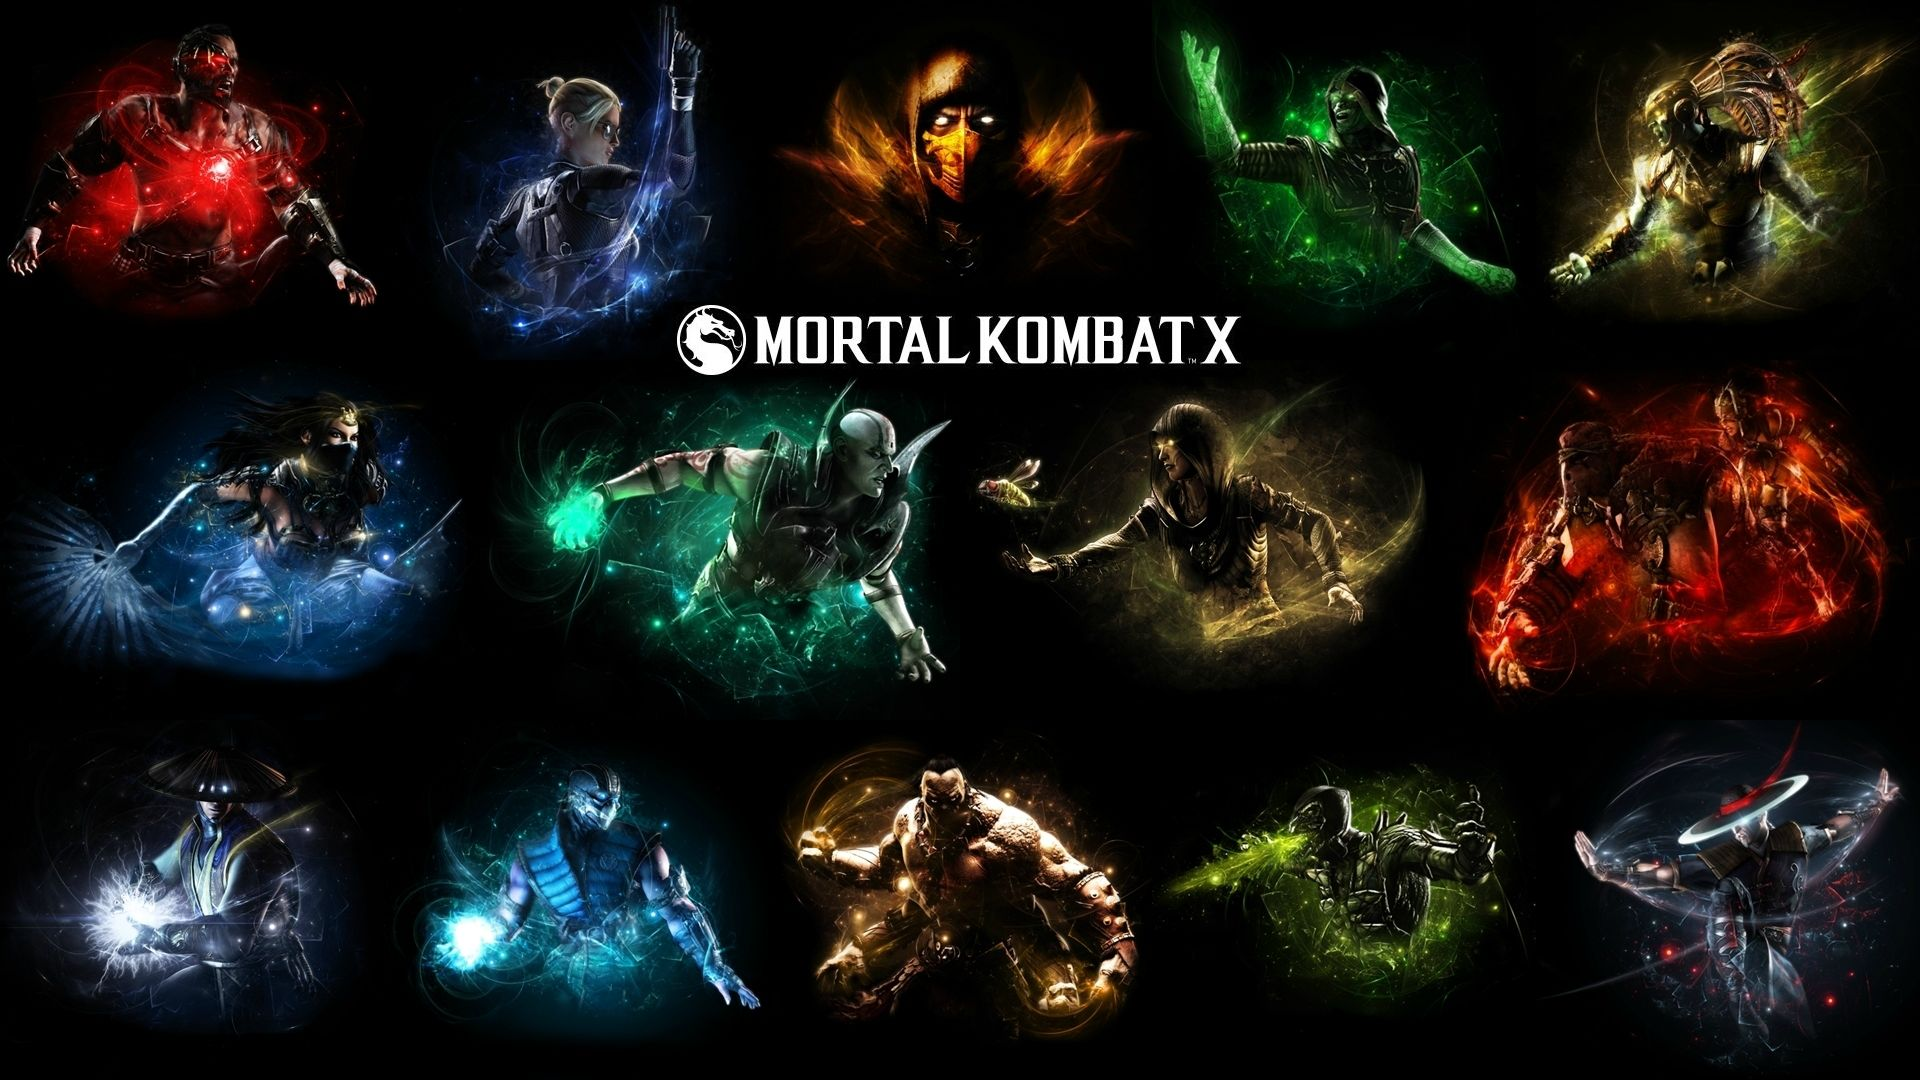 Mortal Kombat X Background: Mortal Kombat X Wallpaper HD